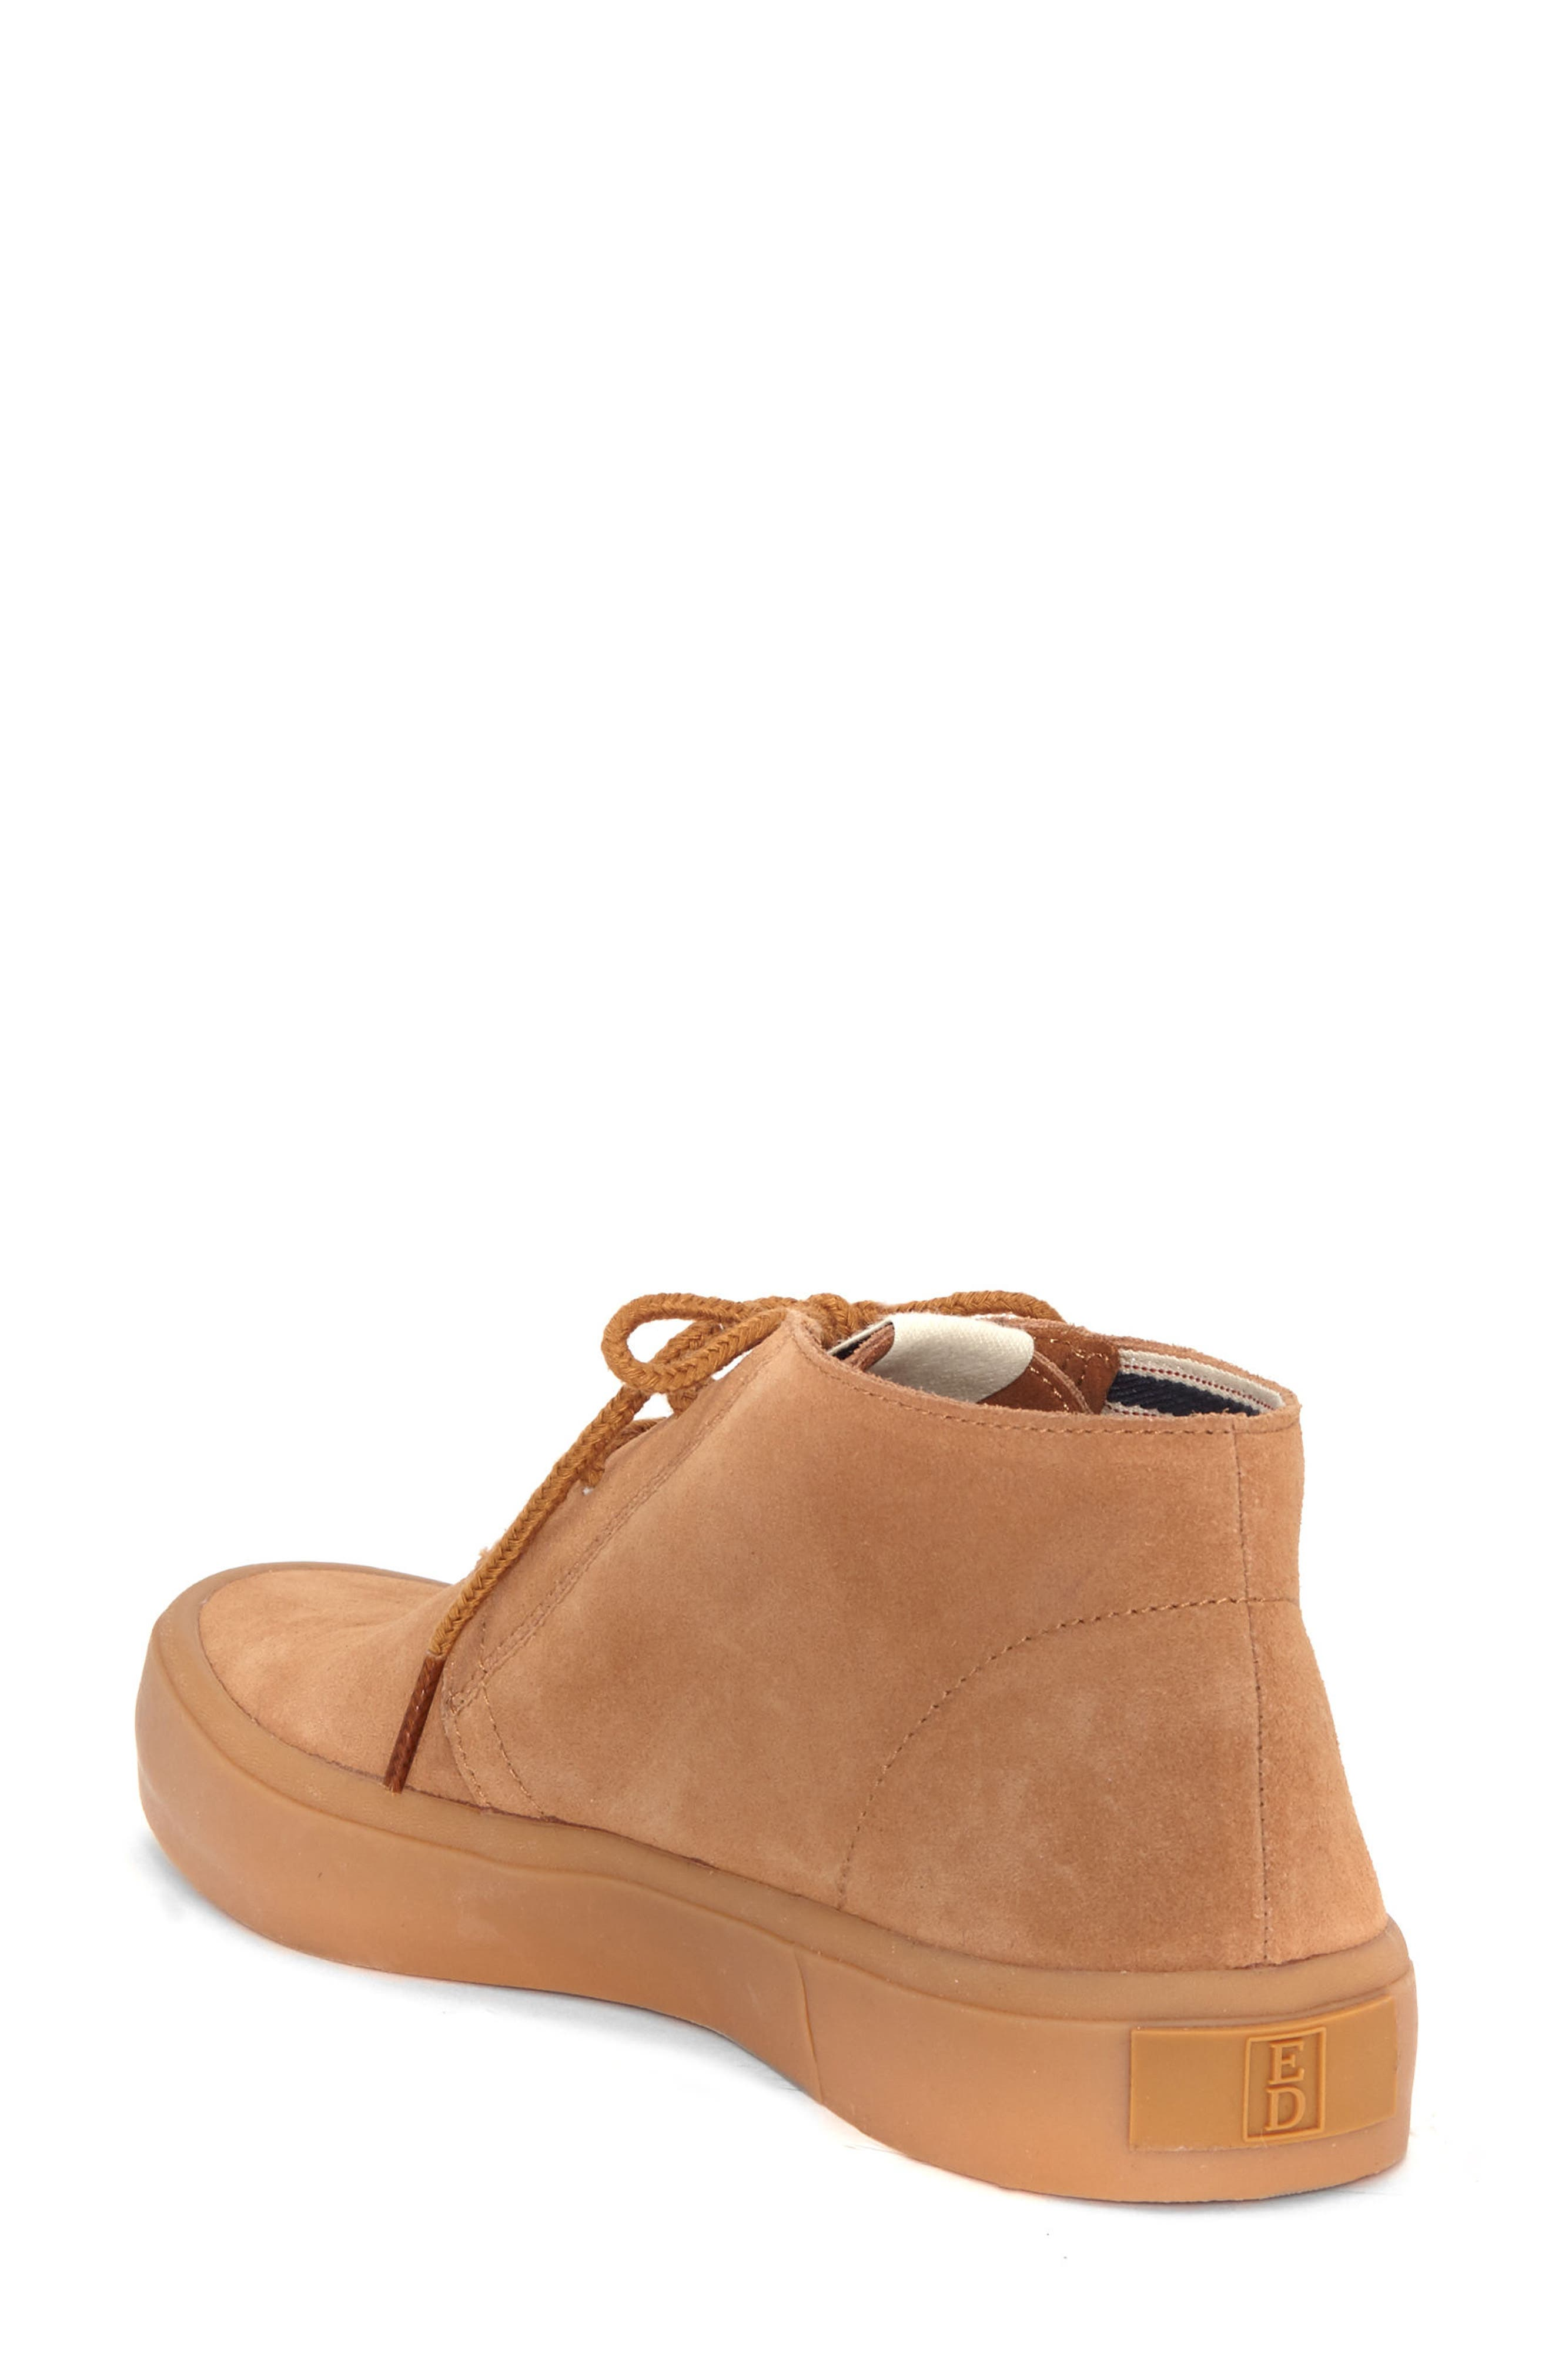 Dax Chukka Sneaker,                             Alternate thumbnail 2, color,                             Honey Suede